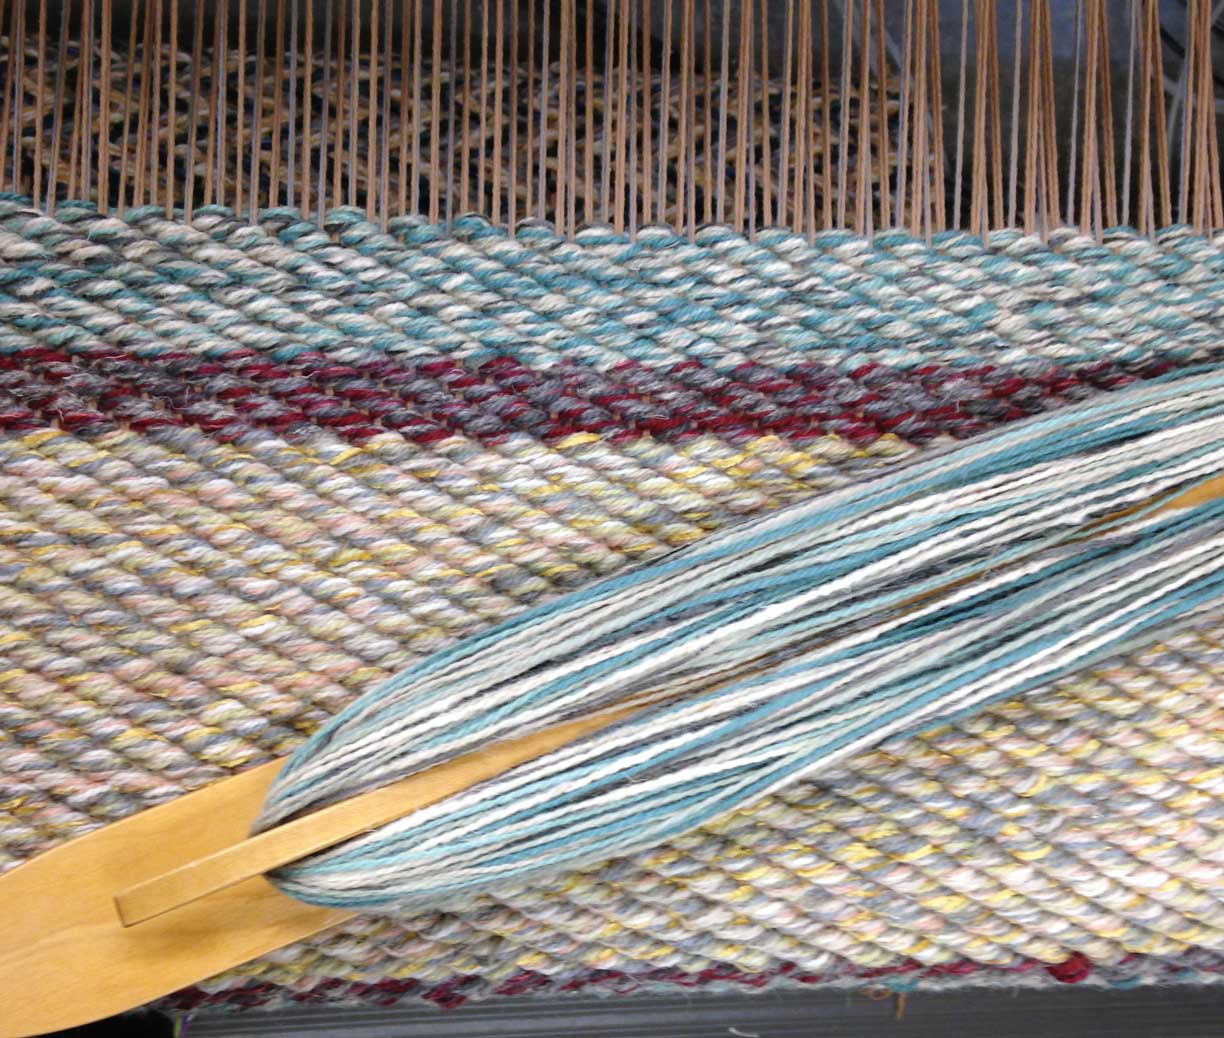 Twill stripes on the loom